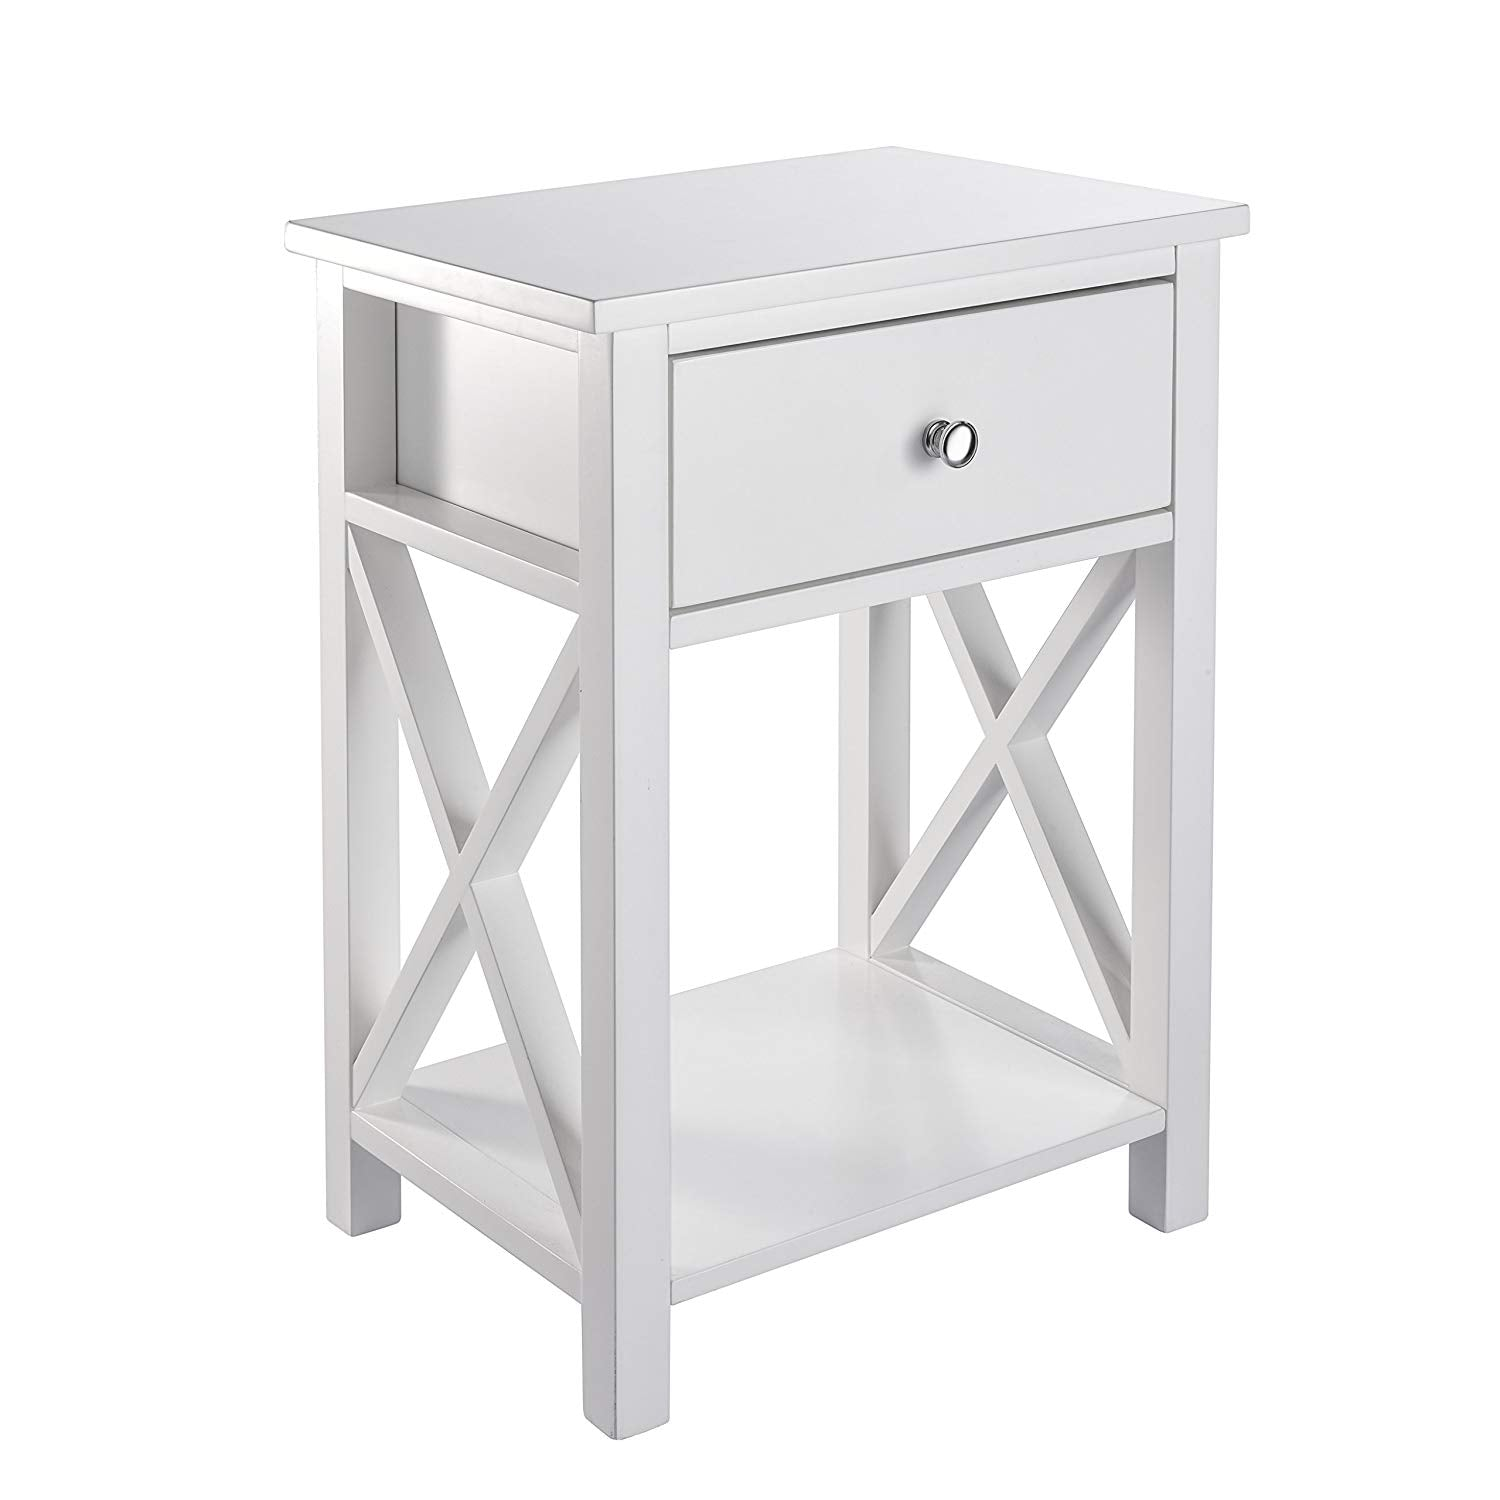 X-Design Side End Table Night Stand Storage Shelf with Bin Drawer